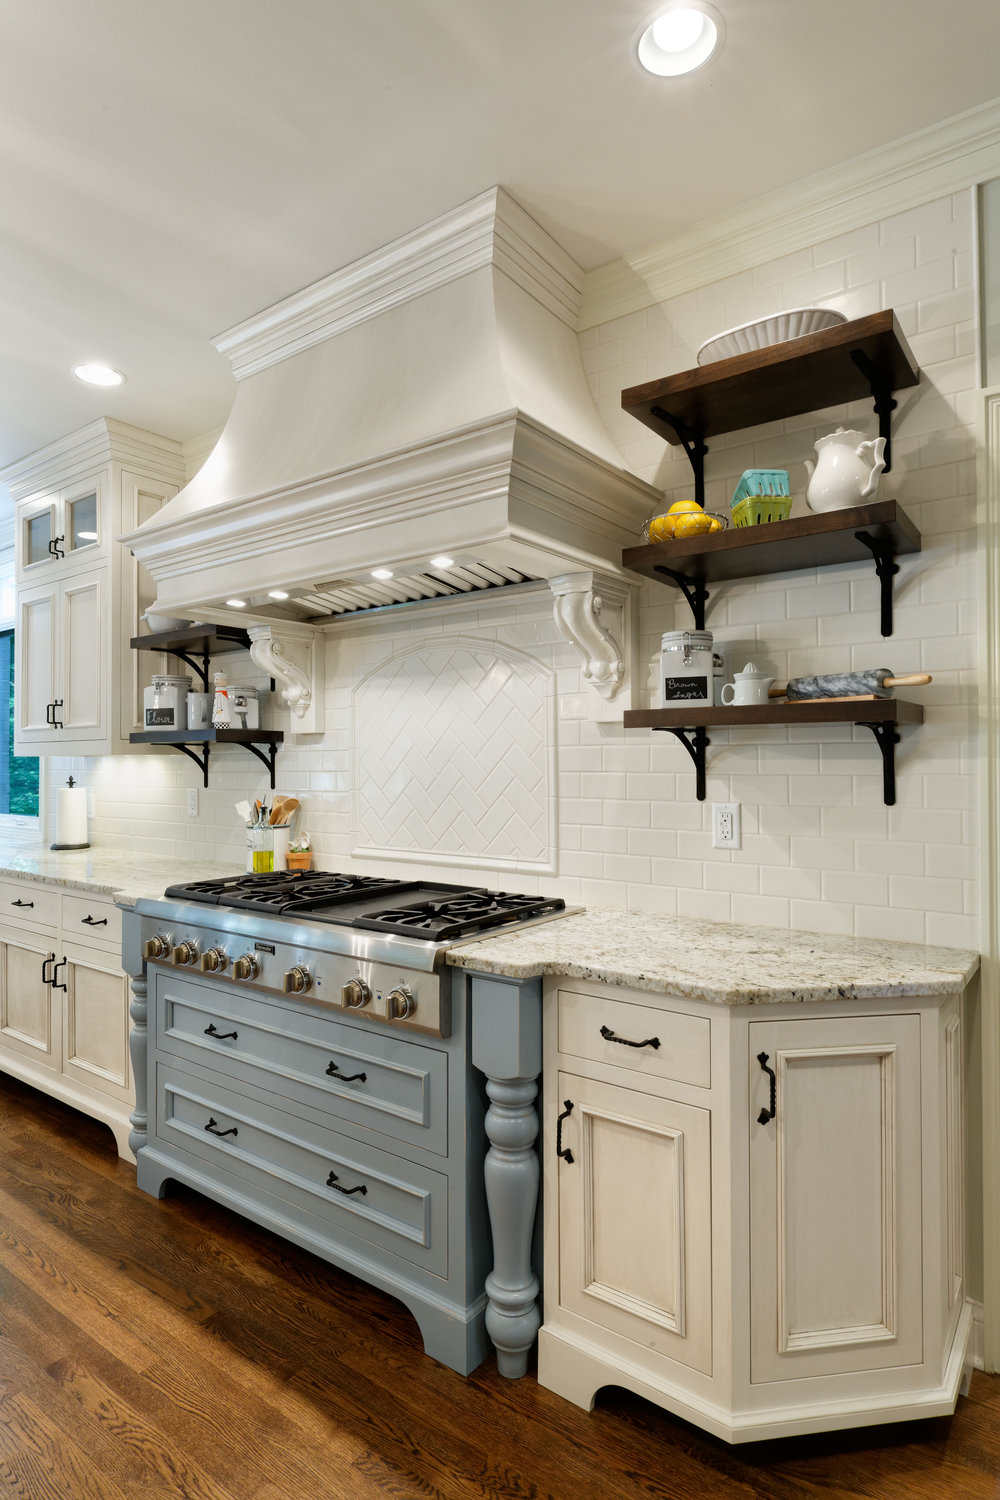 Kitchen Cabinetry and Range Hood